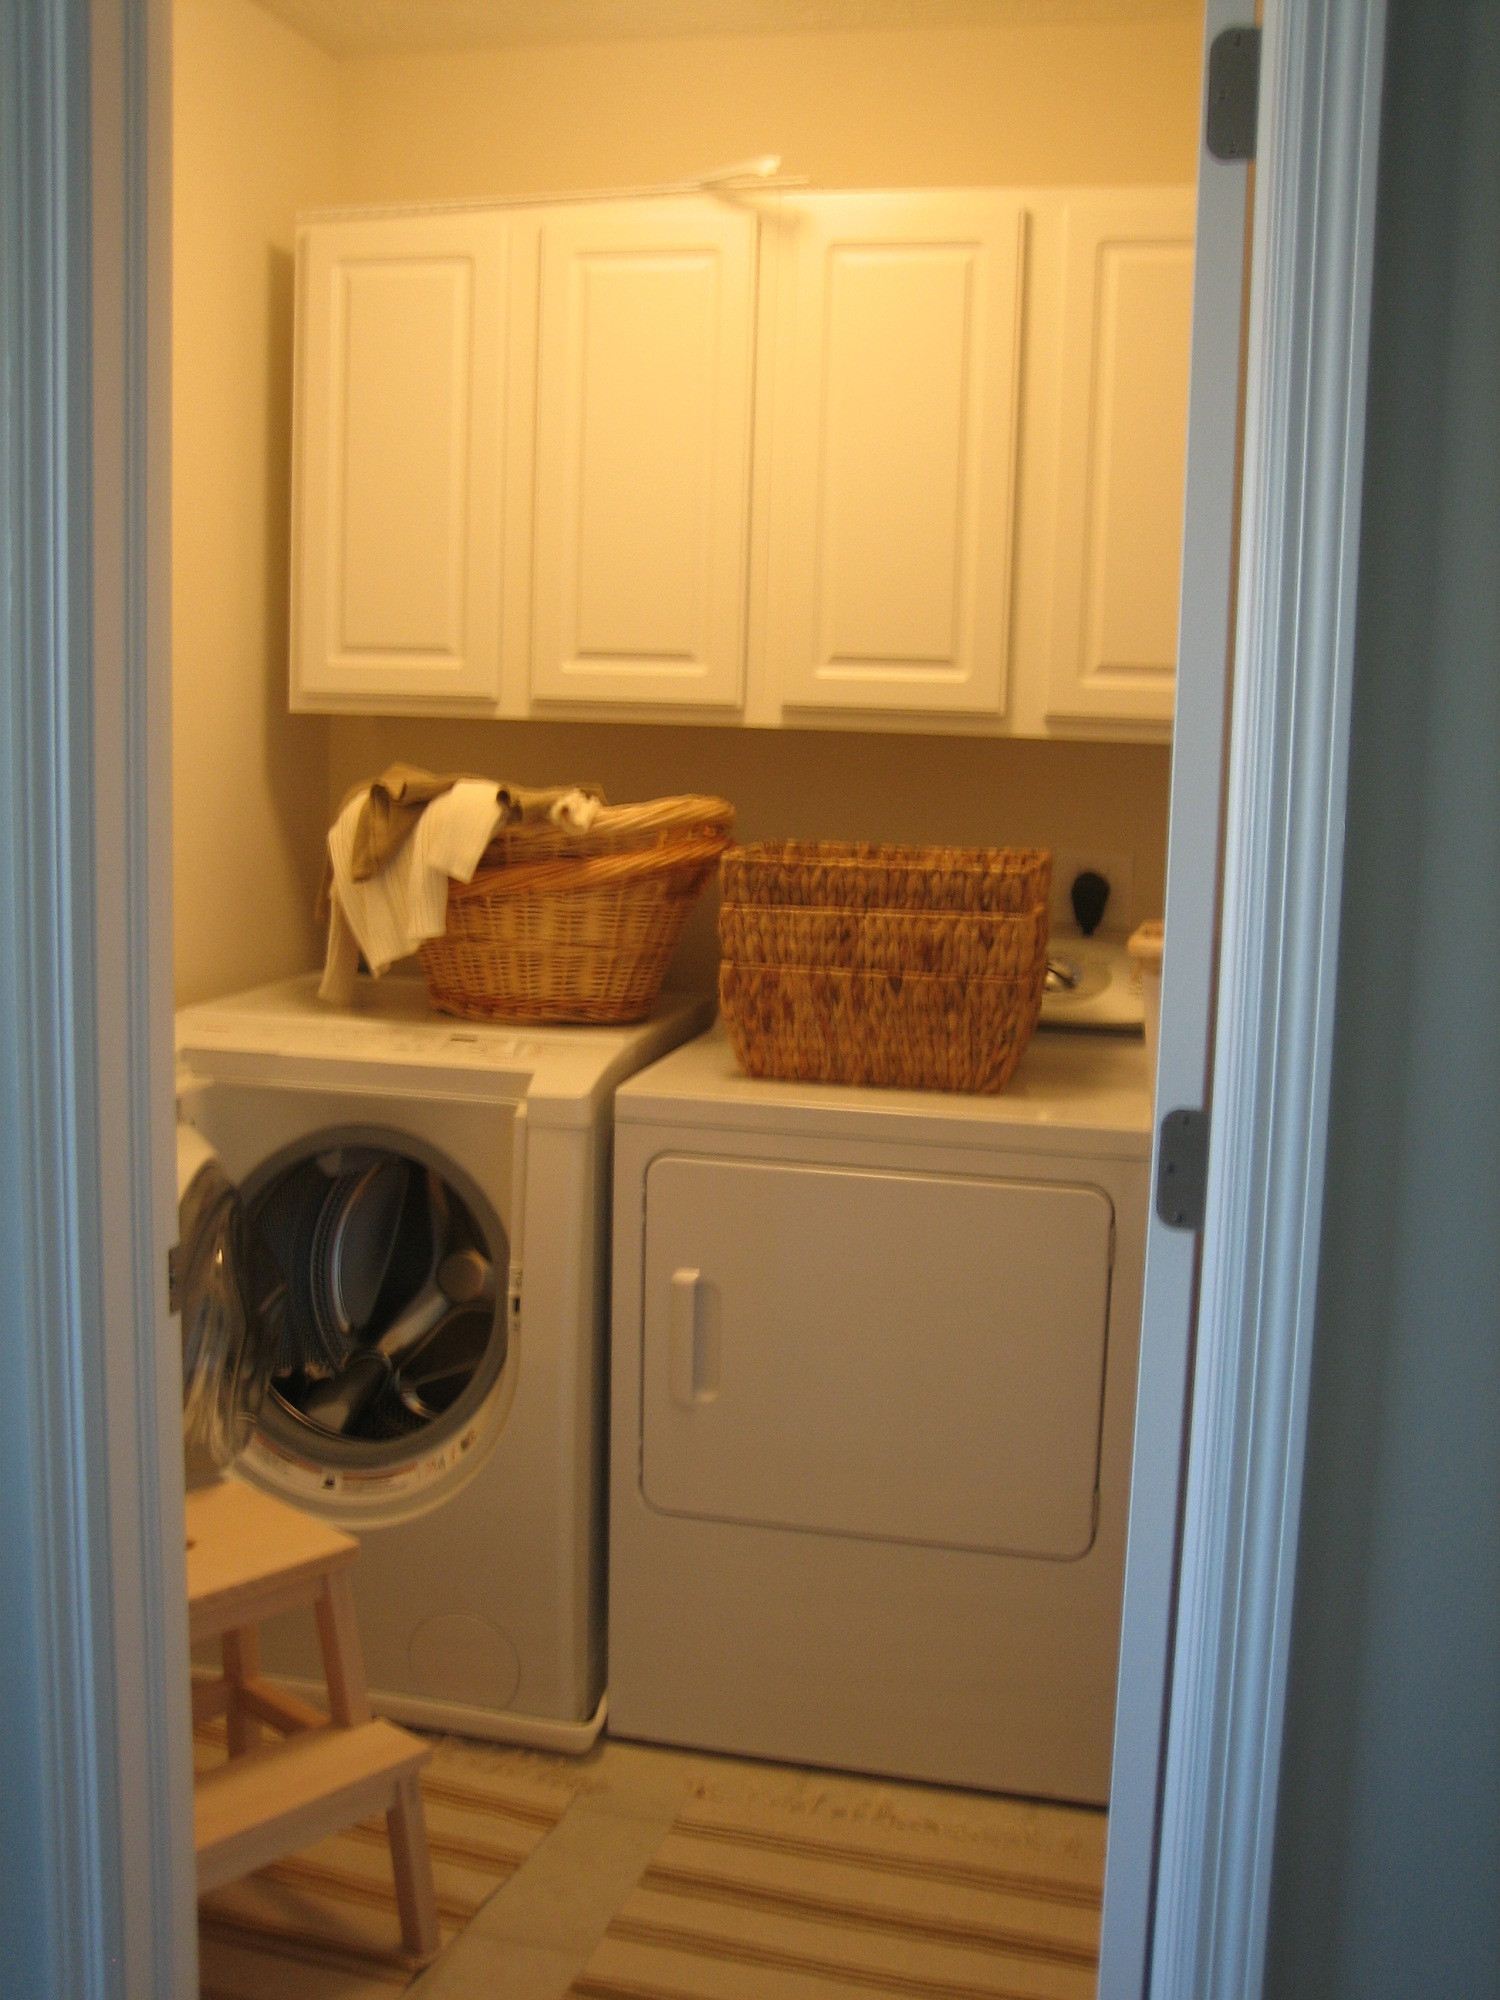 Best ideas about Laundry Room Makeover . Save or Pin 20 Laundry Room Makeover Ideas You Can Try in Your Home Now.